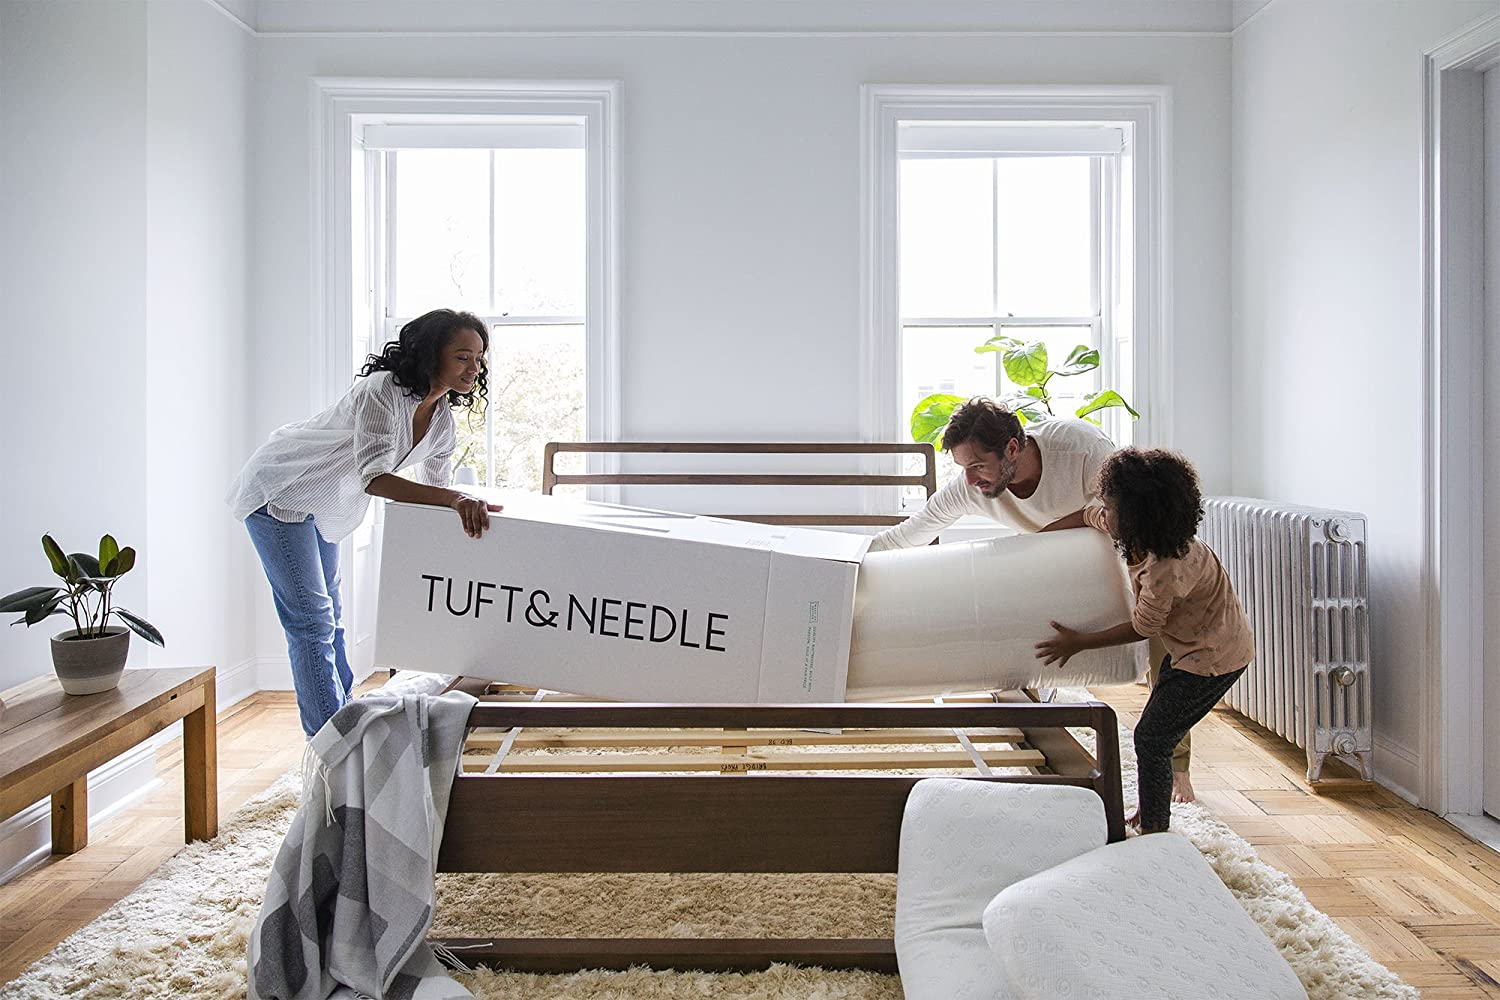 Tuft & Needle Mattress, Queen Mattress with T&N Adaptive Foam,